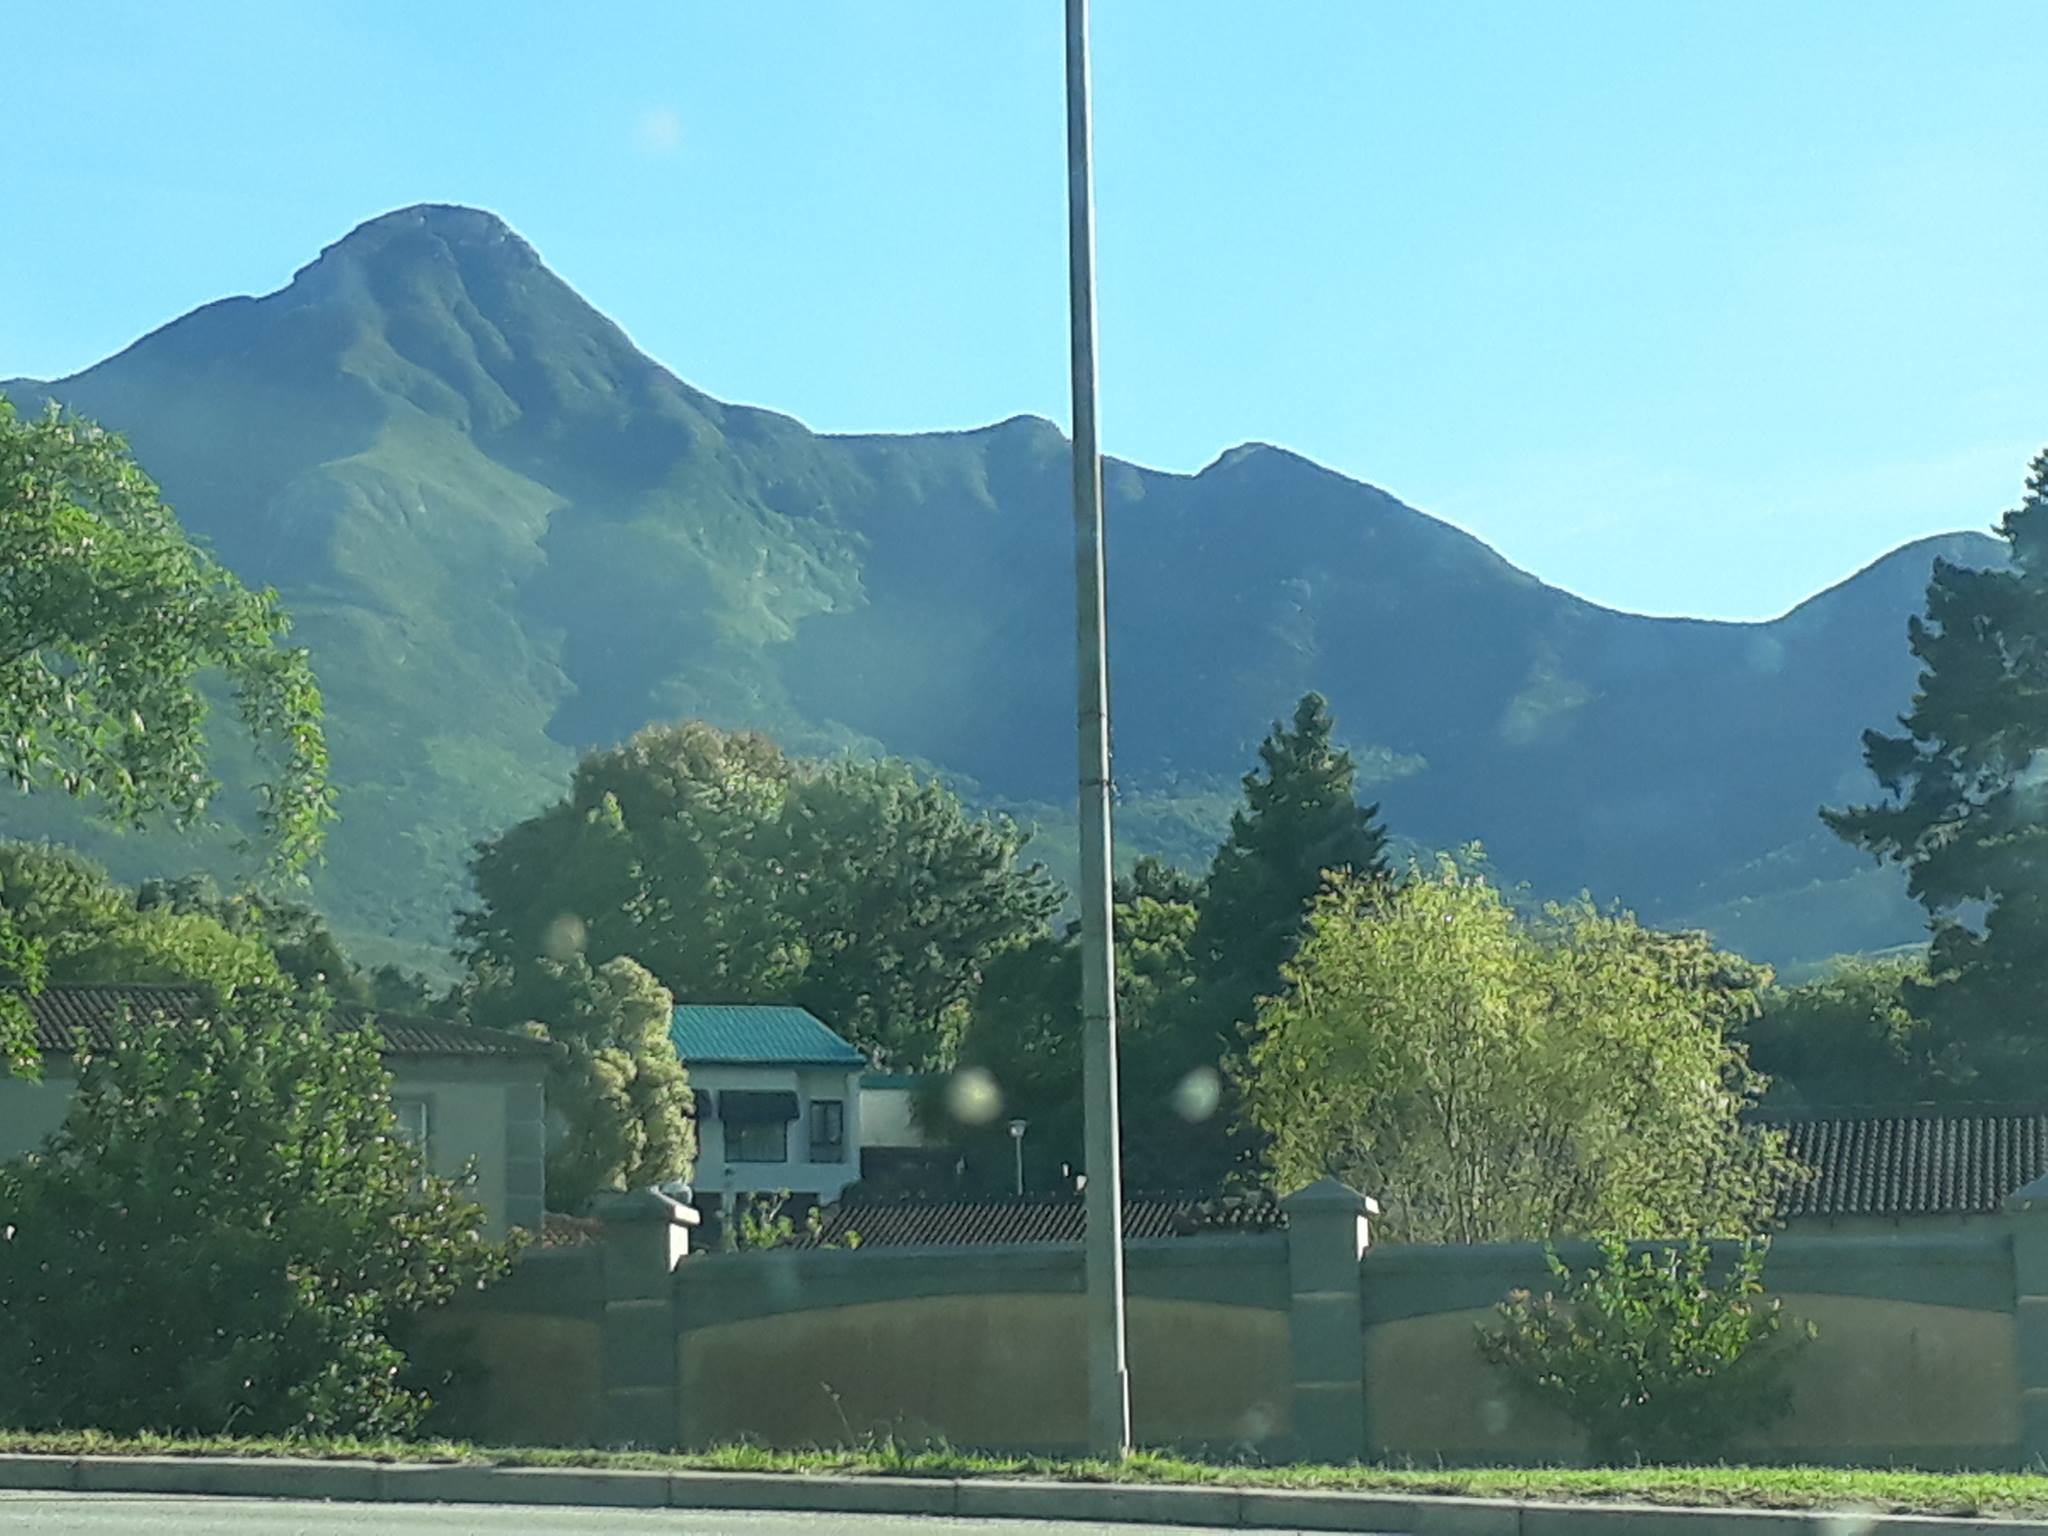 The stunning beautiful mountain and sunny day that greeted me as I drove out of the hospital.